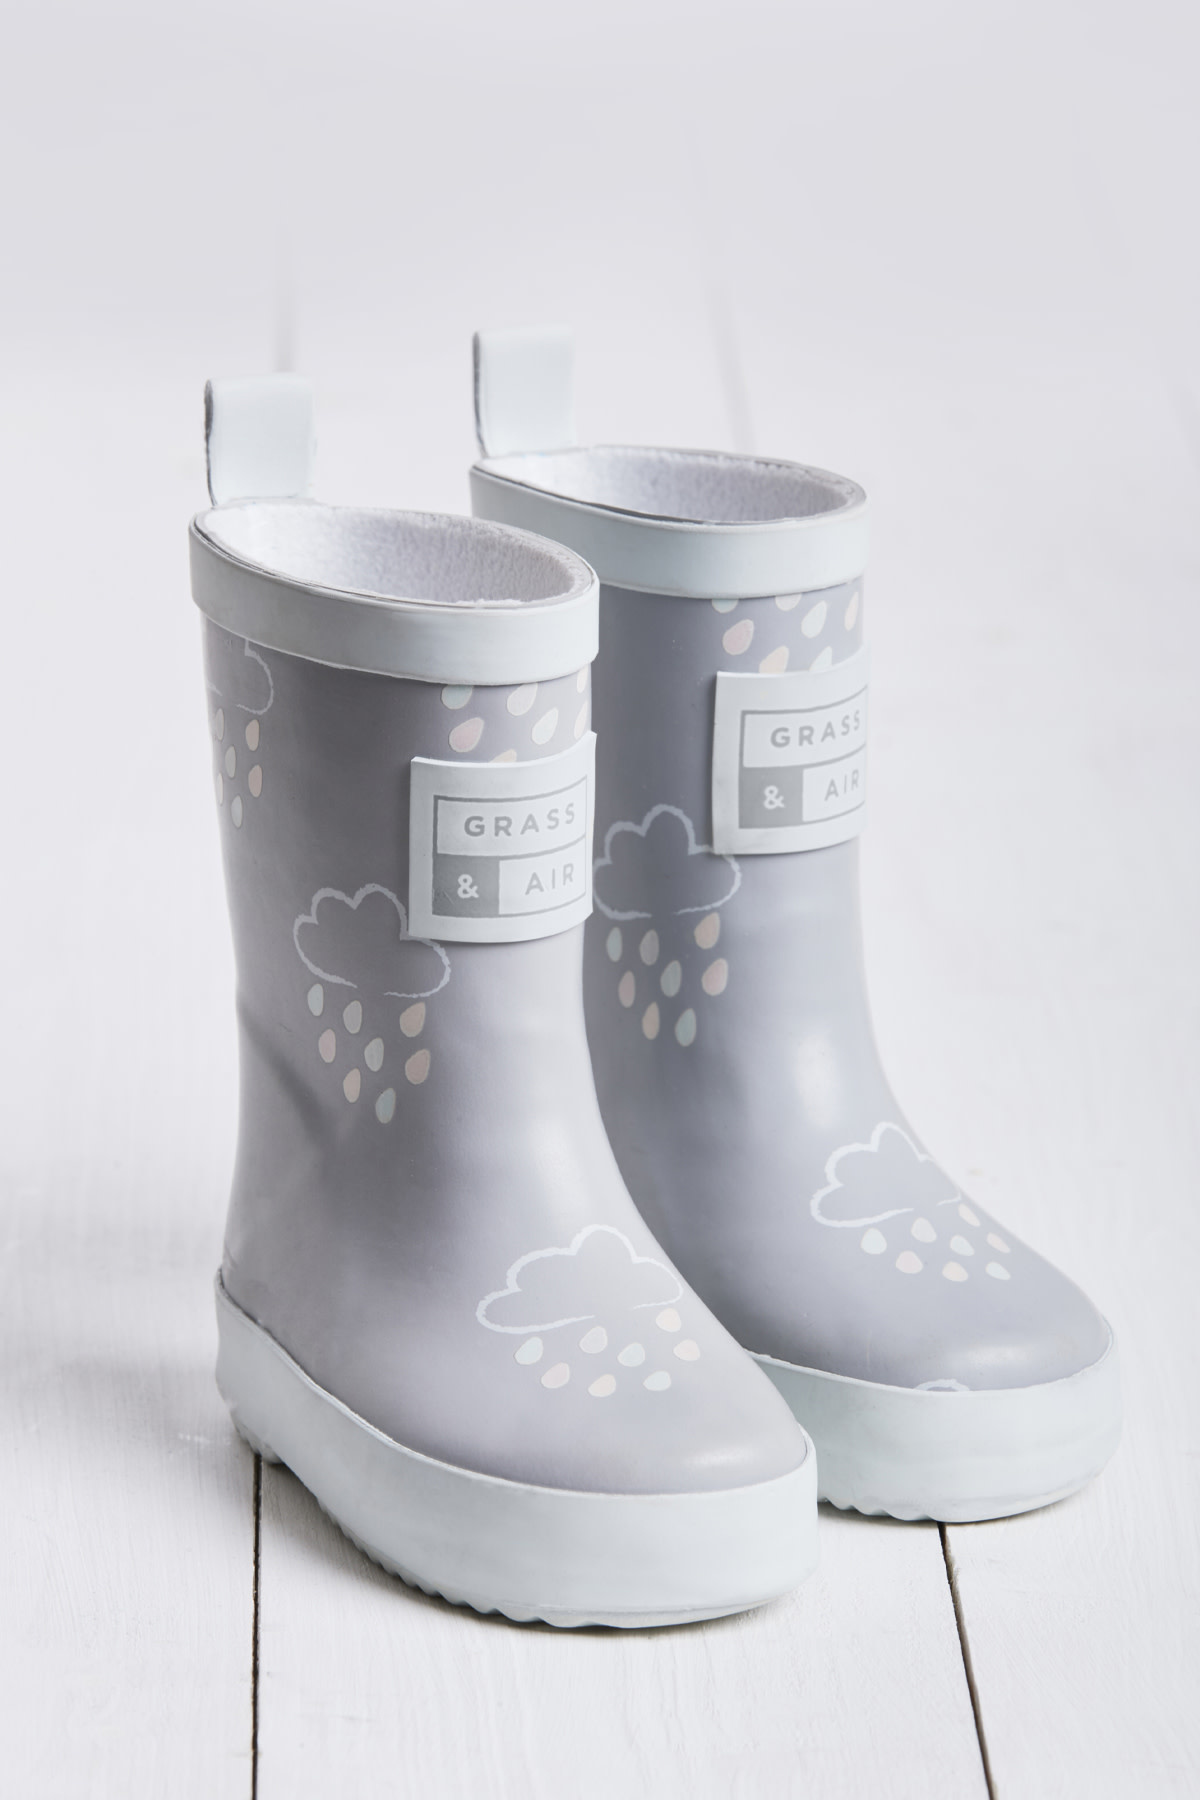 Grass And Air Grass and Air Colour Revealing Wellington Boots Light Grey